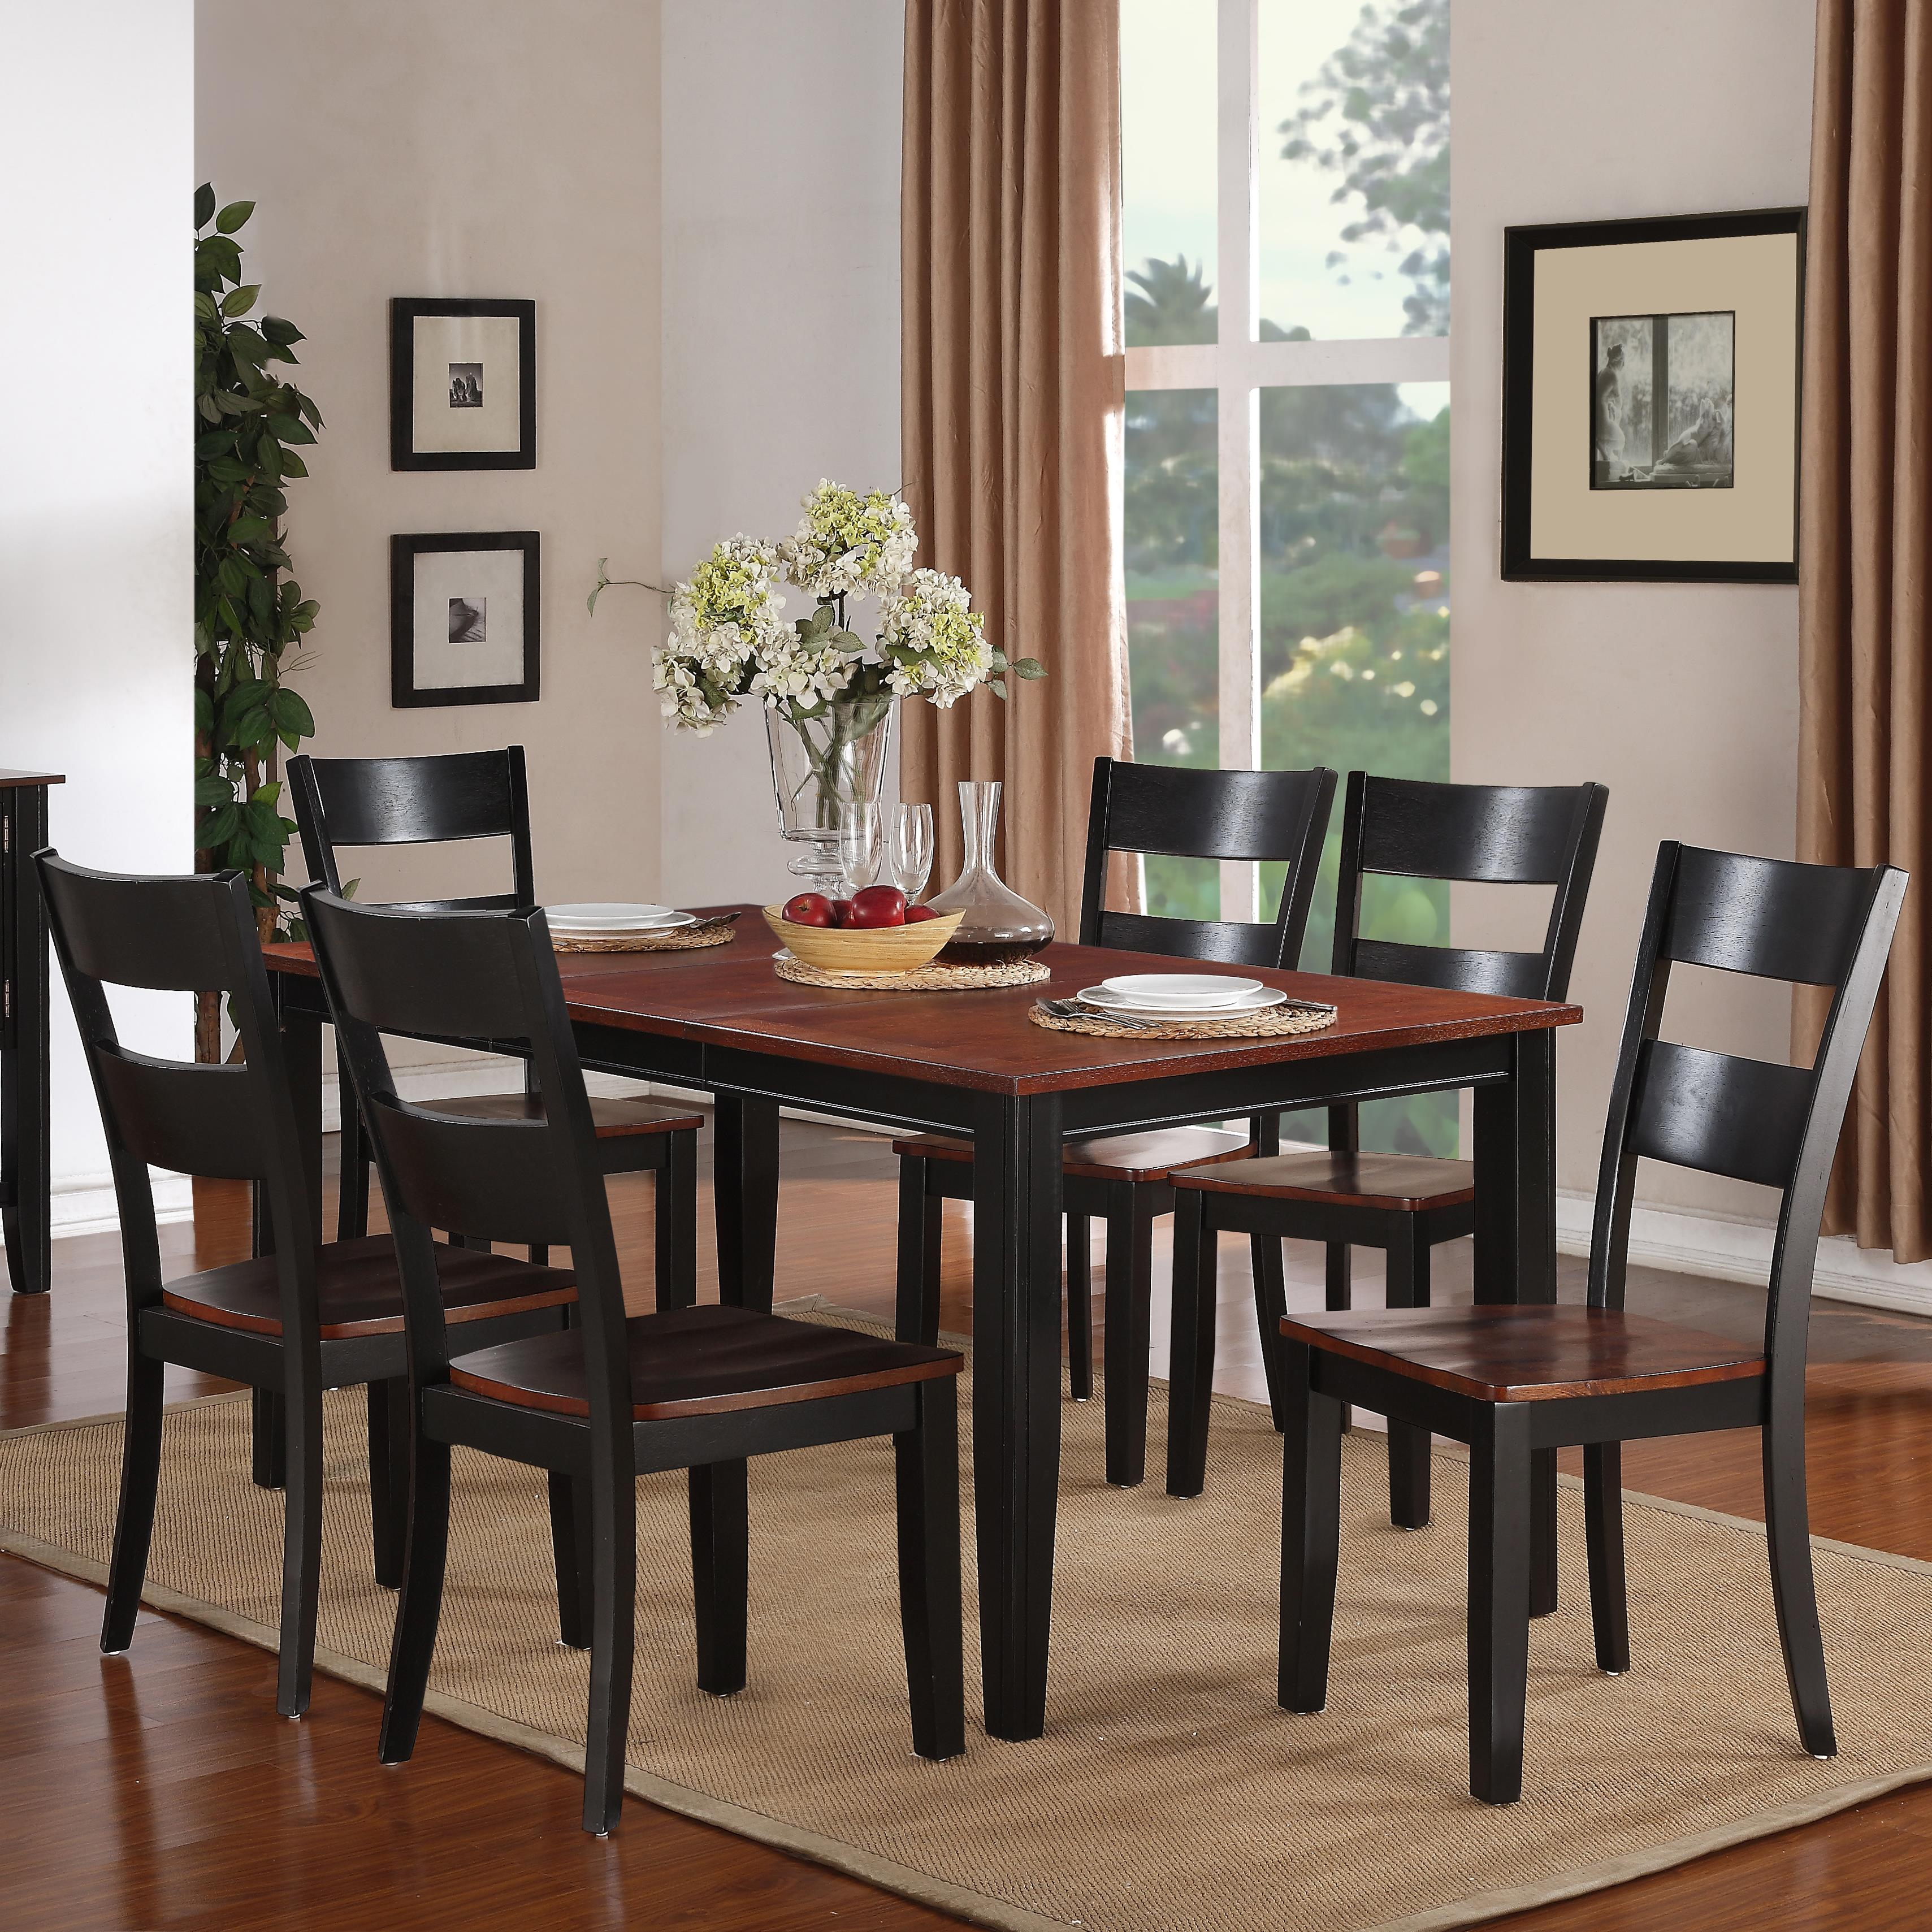 Holland House 8202 7 Piece Dining Set - Item Number: 8202-3866+6x521-S